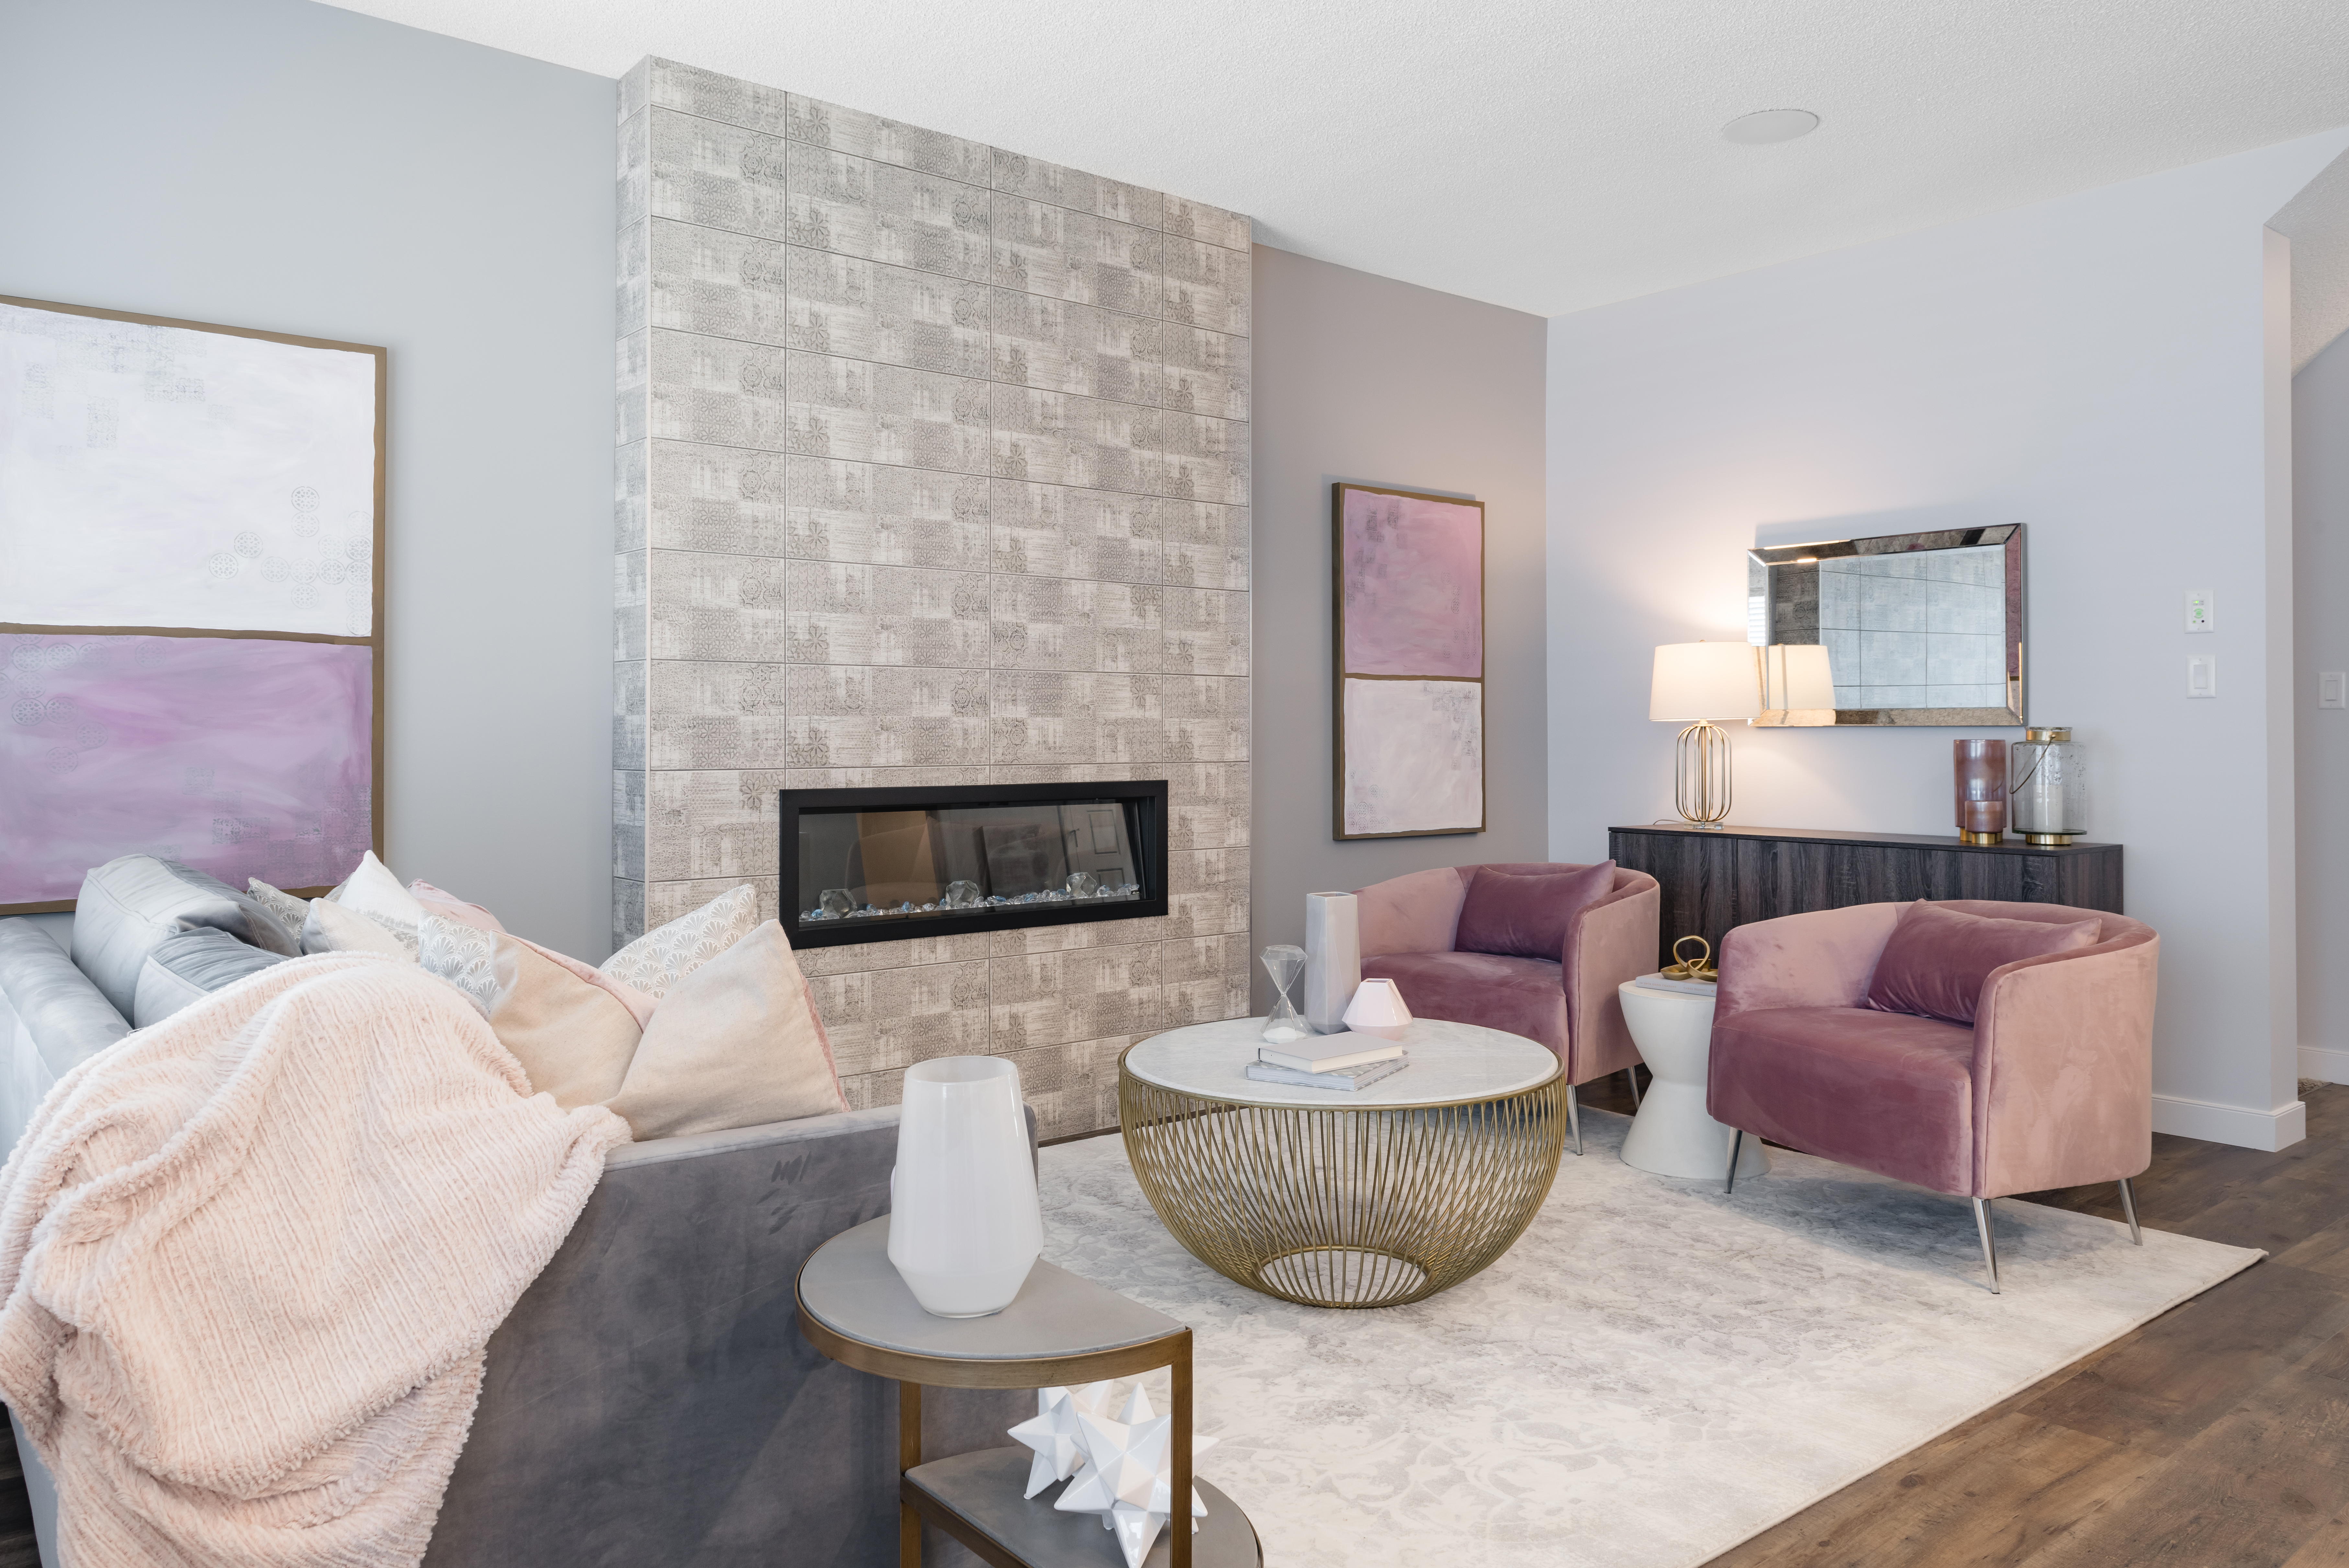 2019-02-05-secord-heights-sampson-great-room